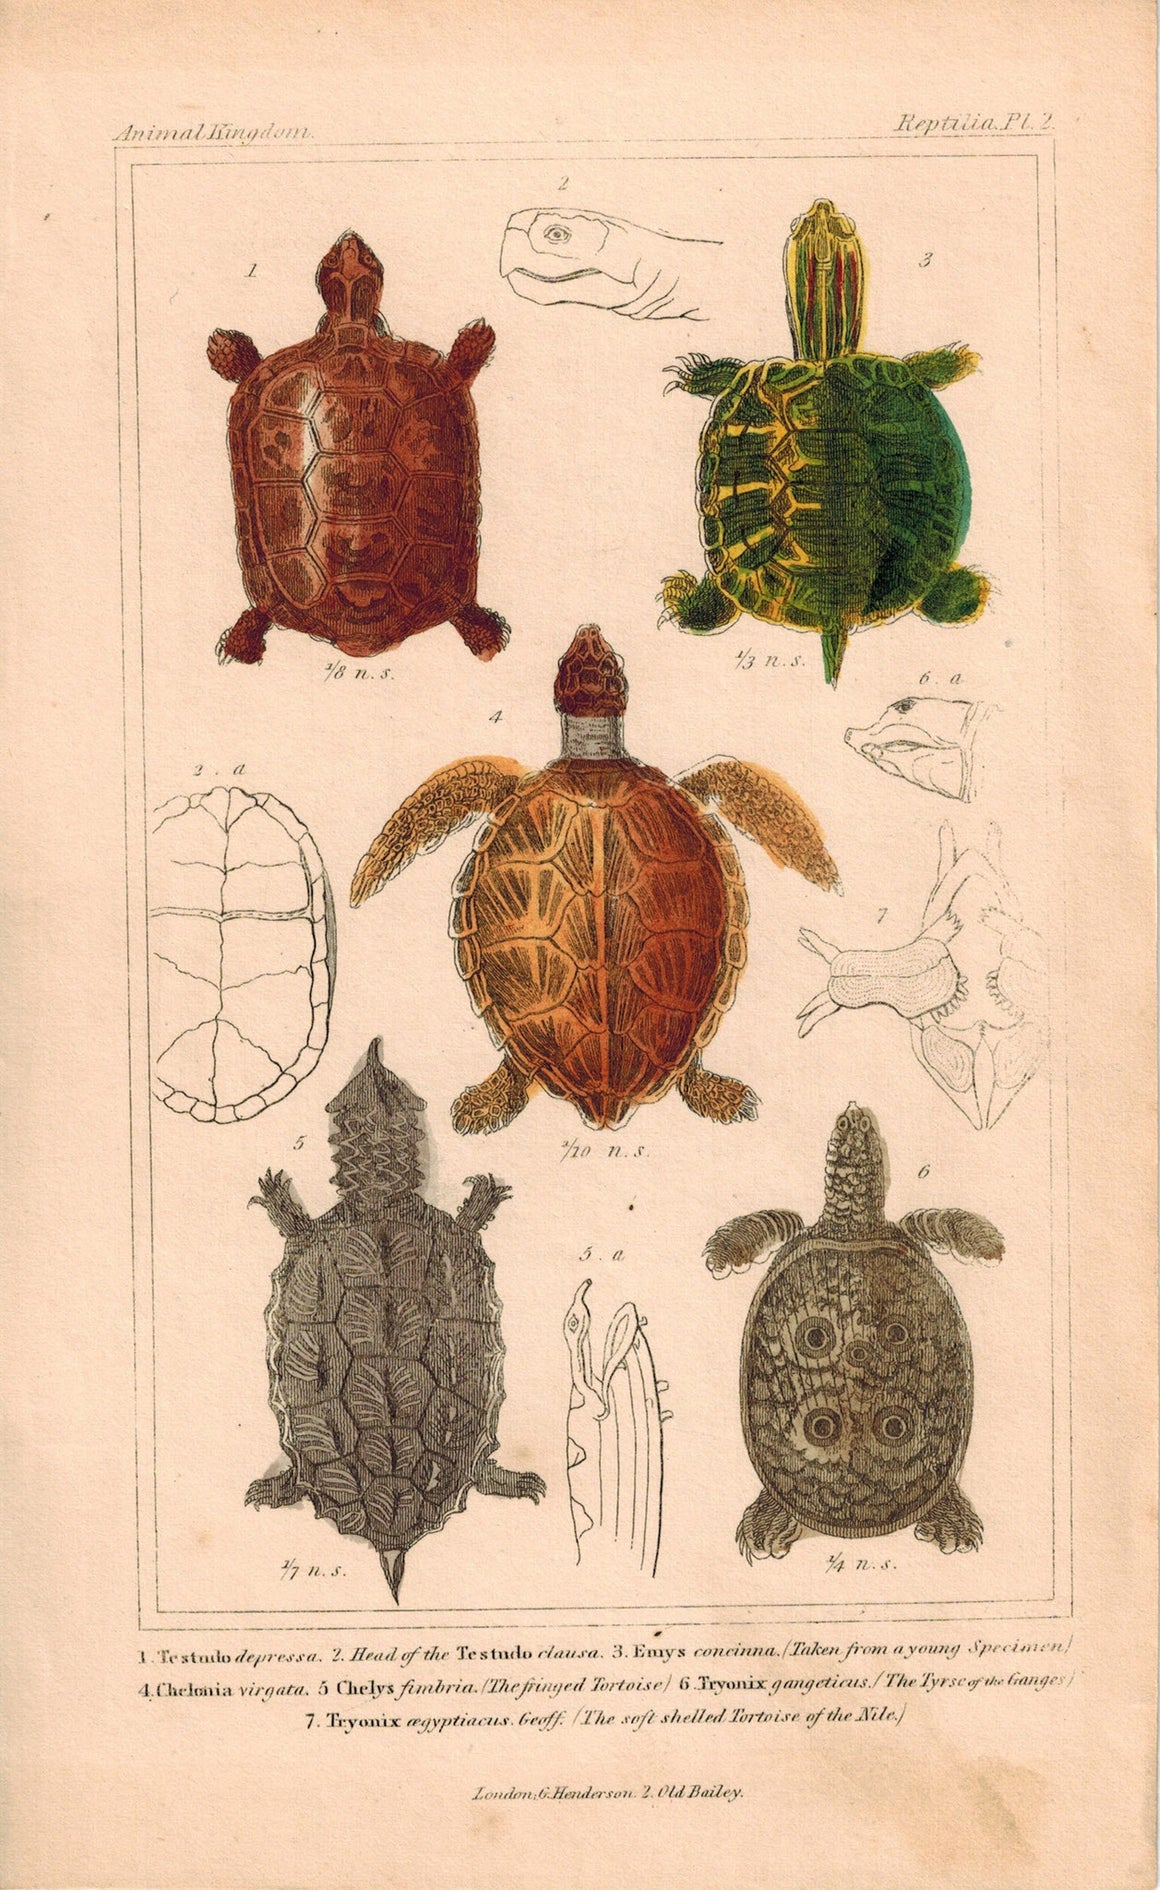 Tortoise Shells 1834 Engraved Cuvier Reptile Turtle Print Pl 7